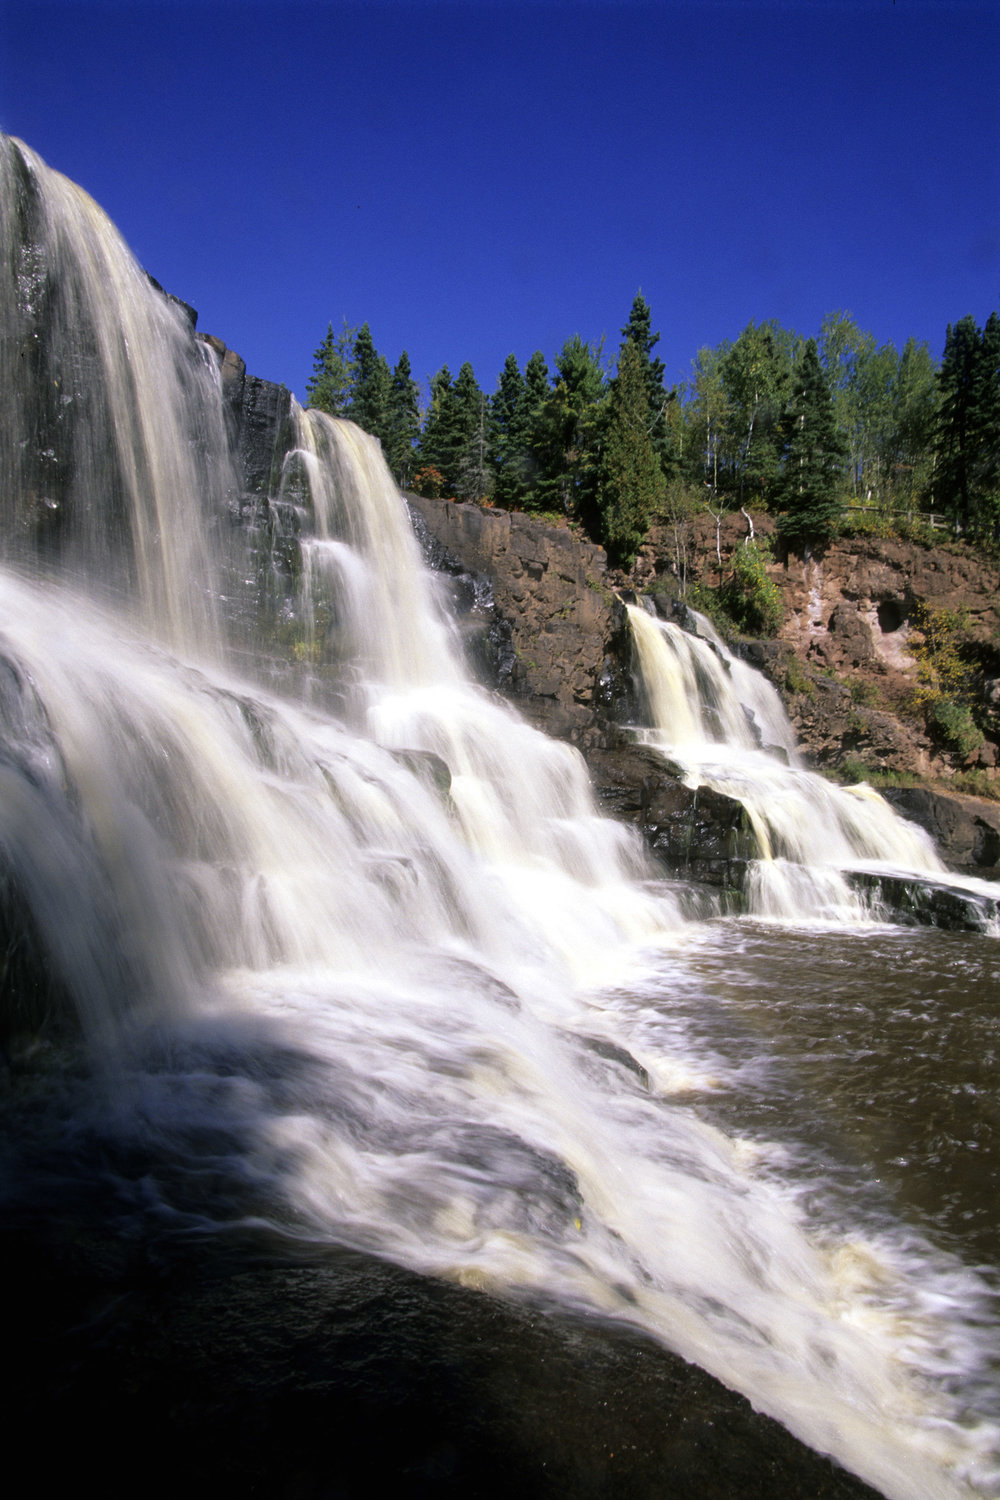 Photo Courtesy of Explore Minnesota Tourism